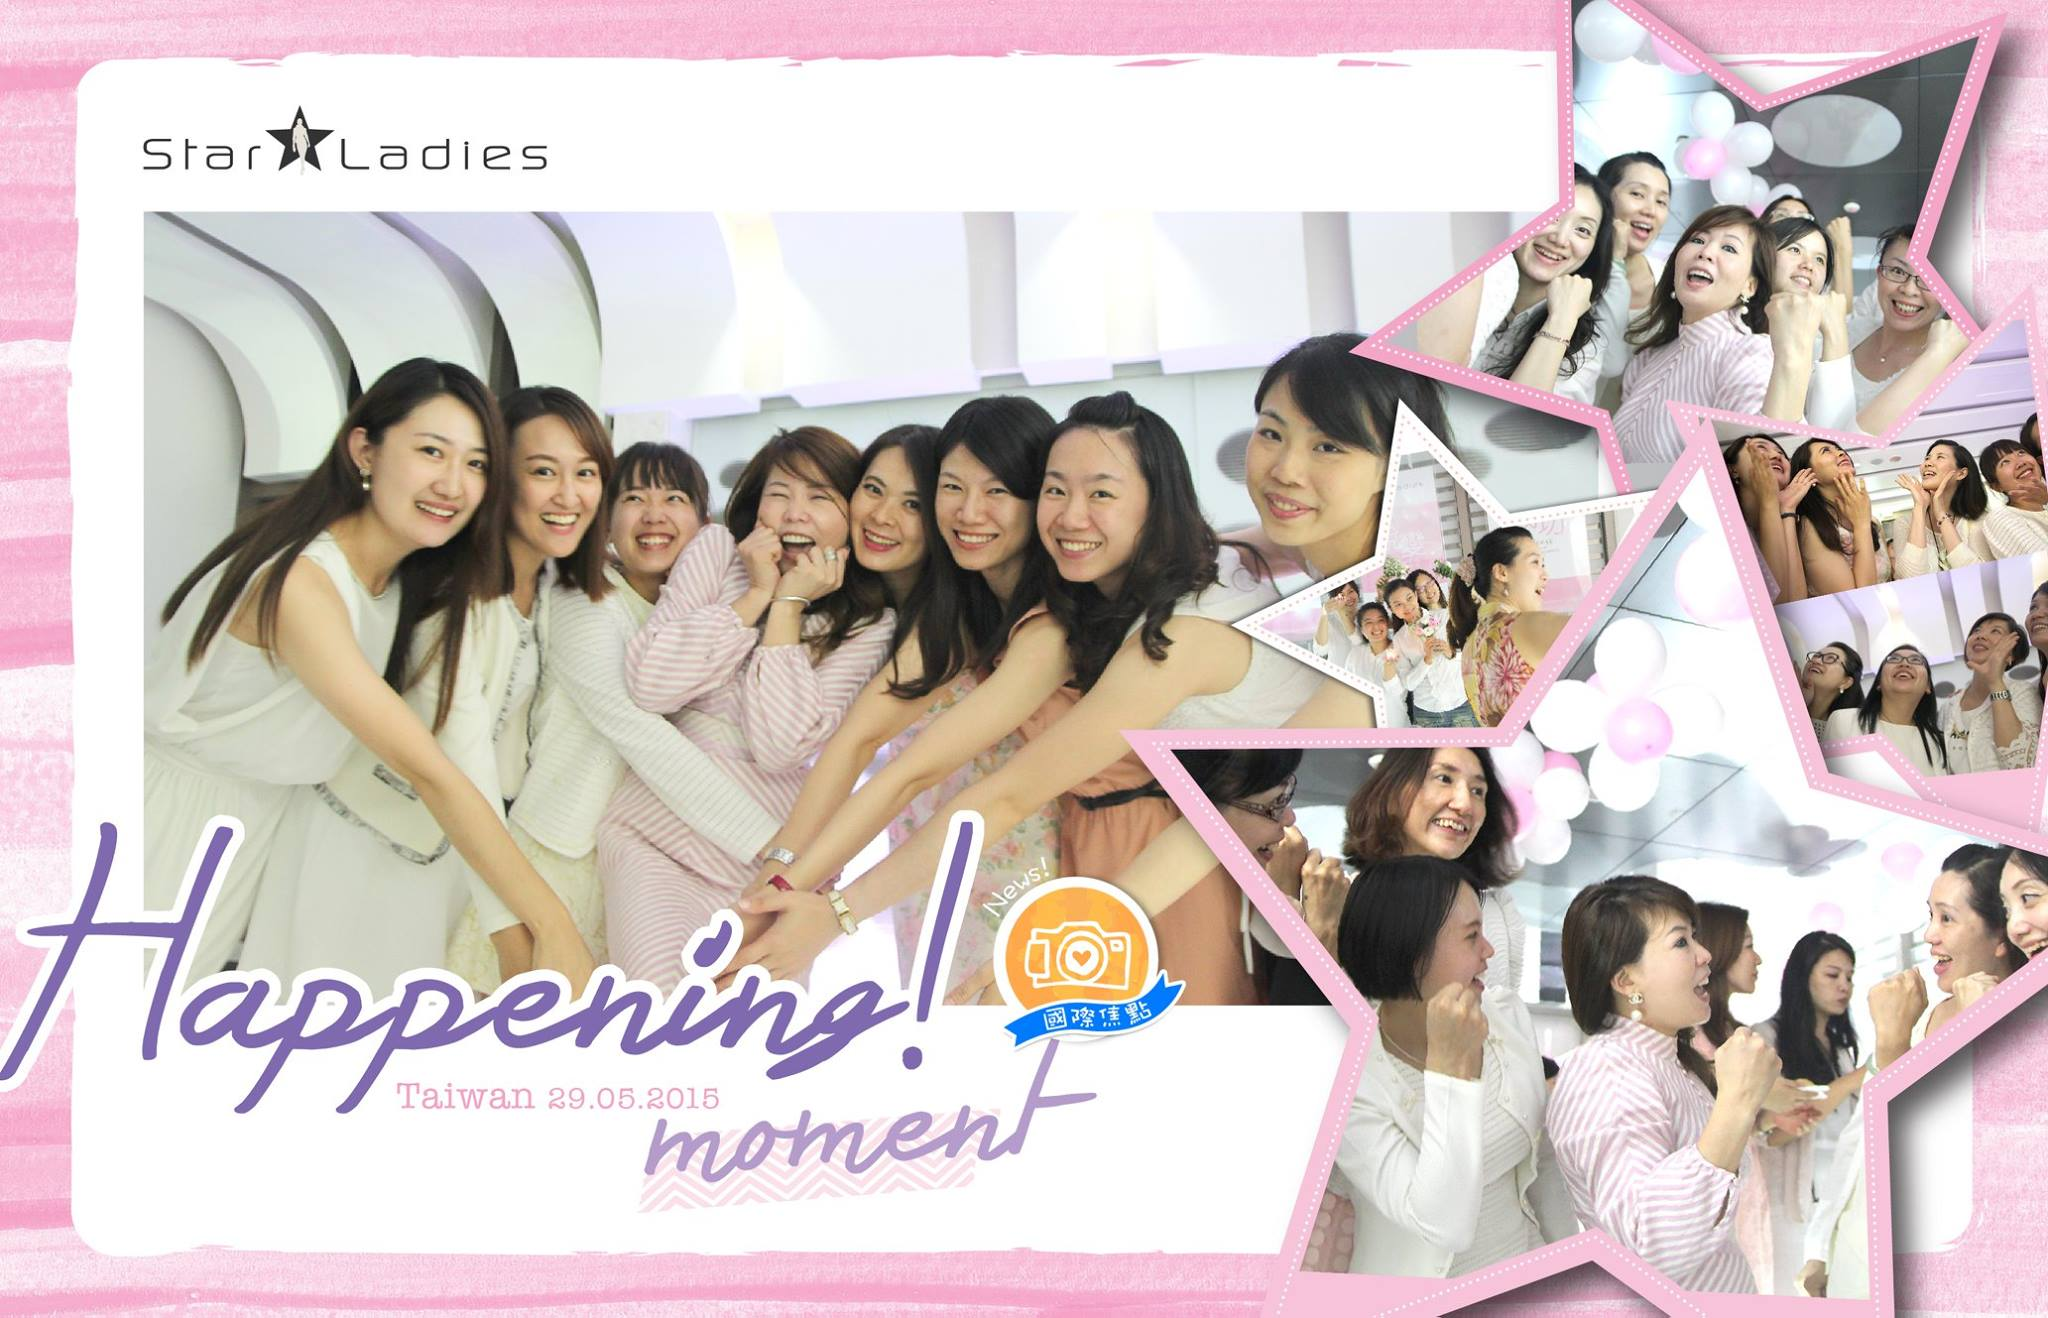 Wow!! Look and feel so happening from Taiwan StarLadies!   Let's look forward for our first meet with Stella too!